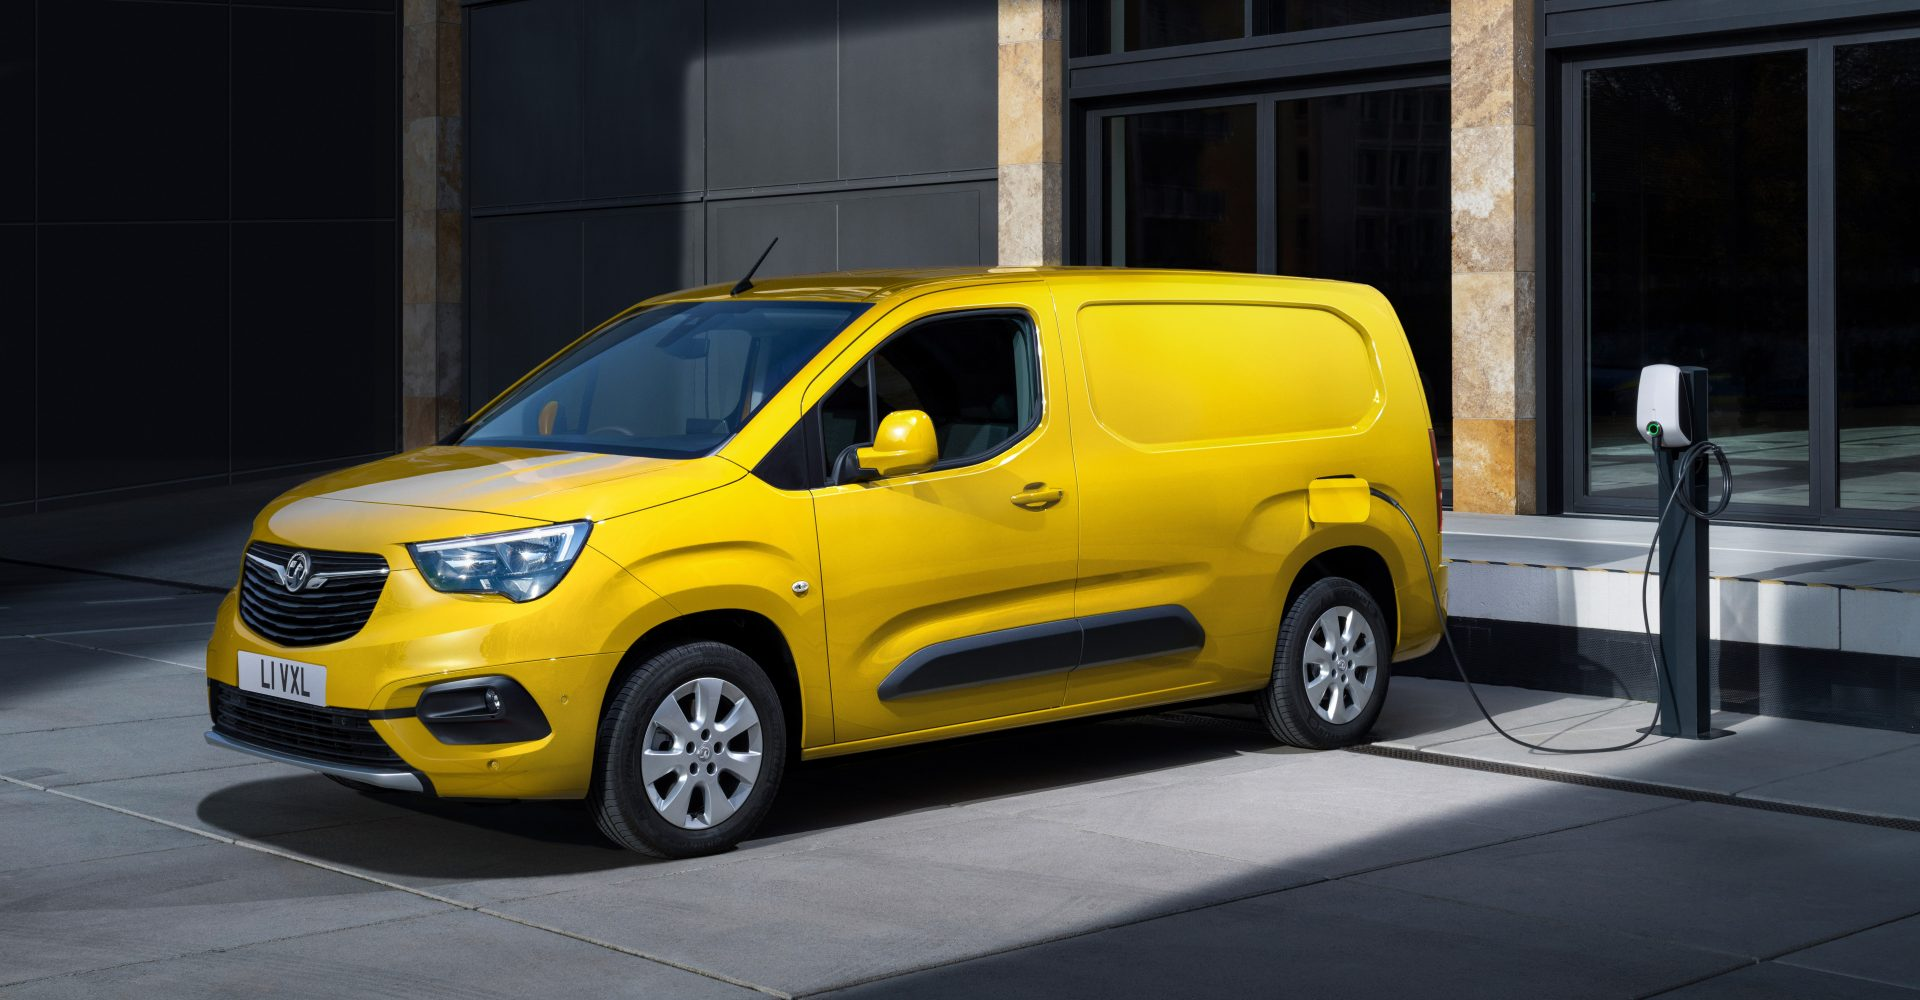 Vauxhall's Combo-e arrives with 171-mile range